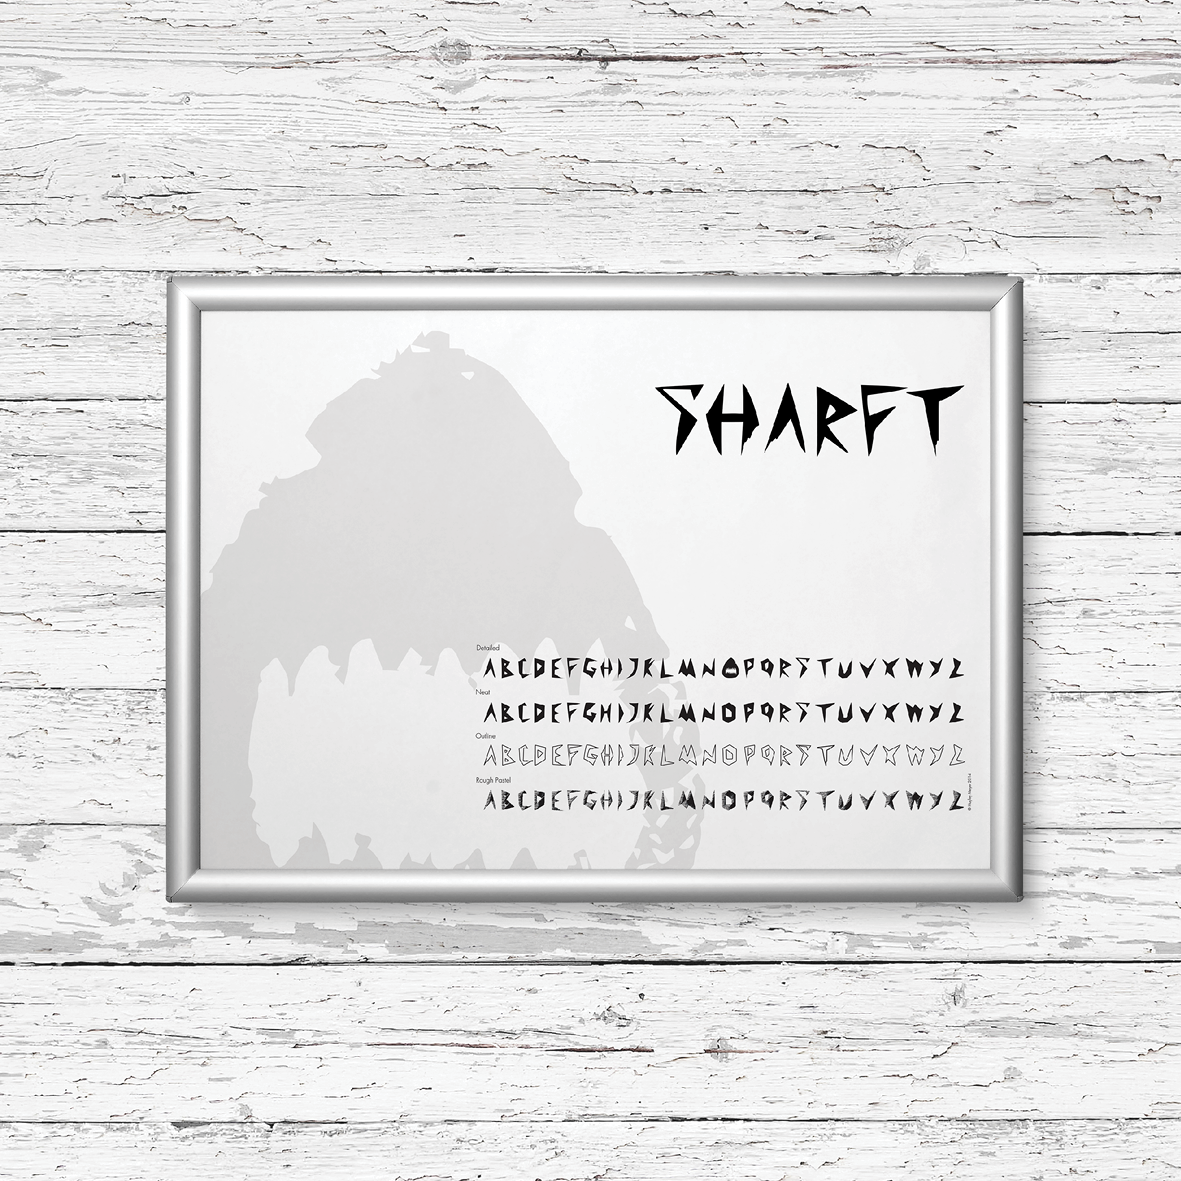 SHARFT   [TYPEFACE DESIGN / ECO CAMPAIGN}